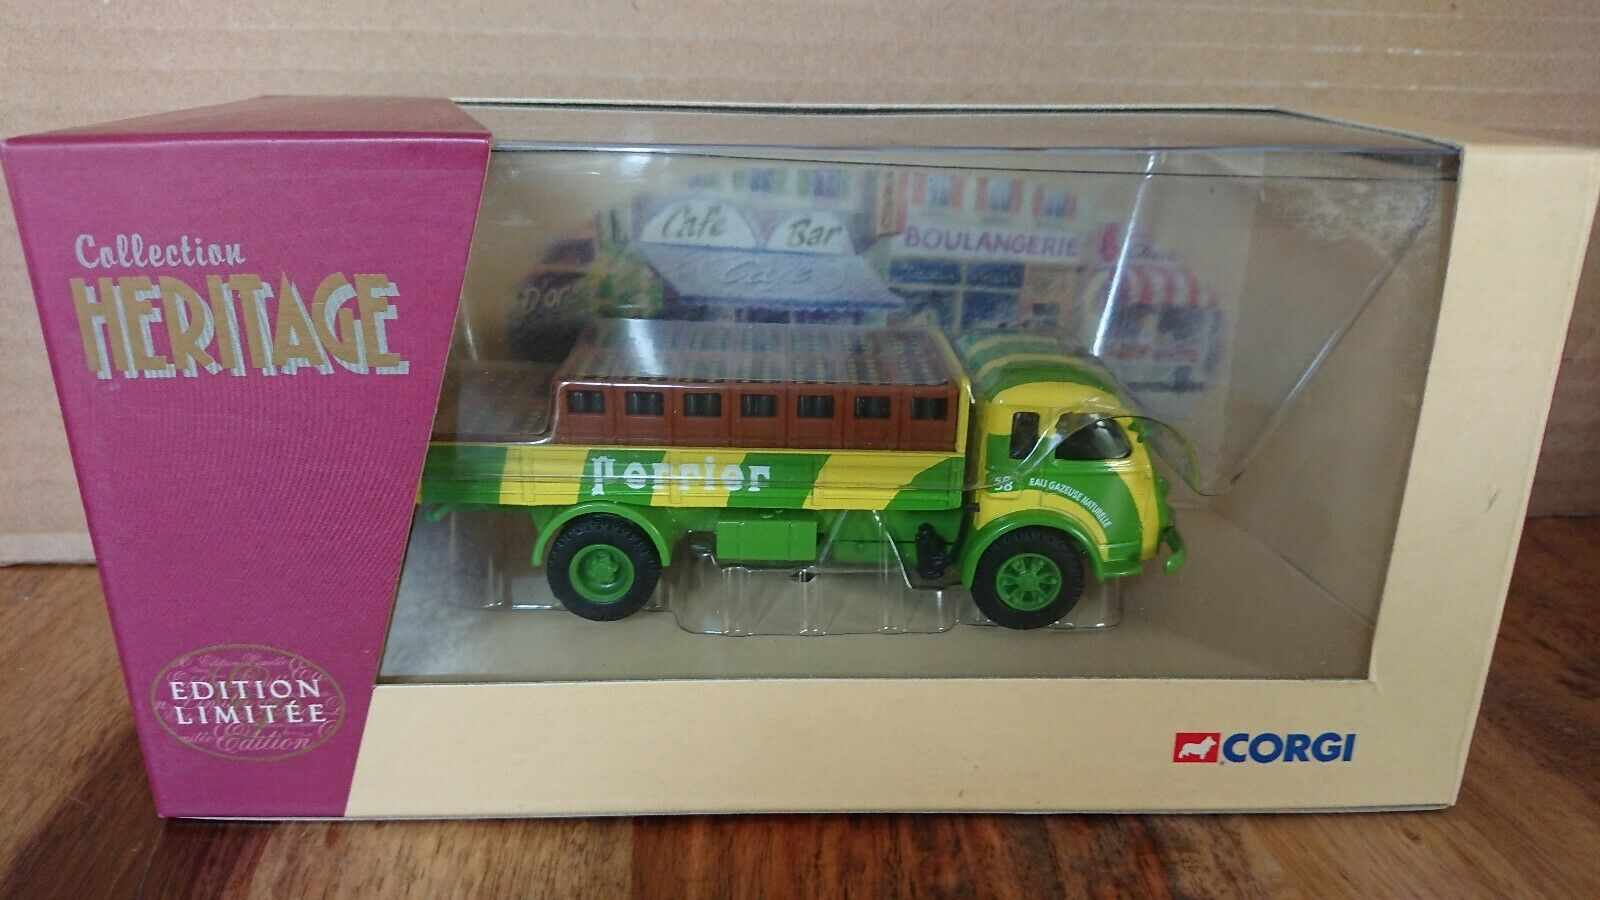 CORGI 71106 SAVIEM bransseur PERRIER Ltd Modifier. No 0004 de 3000